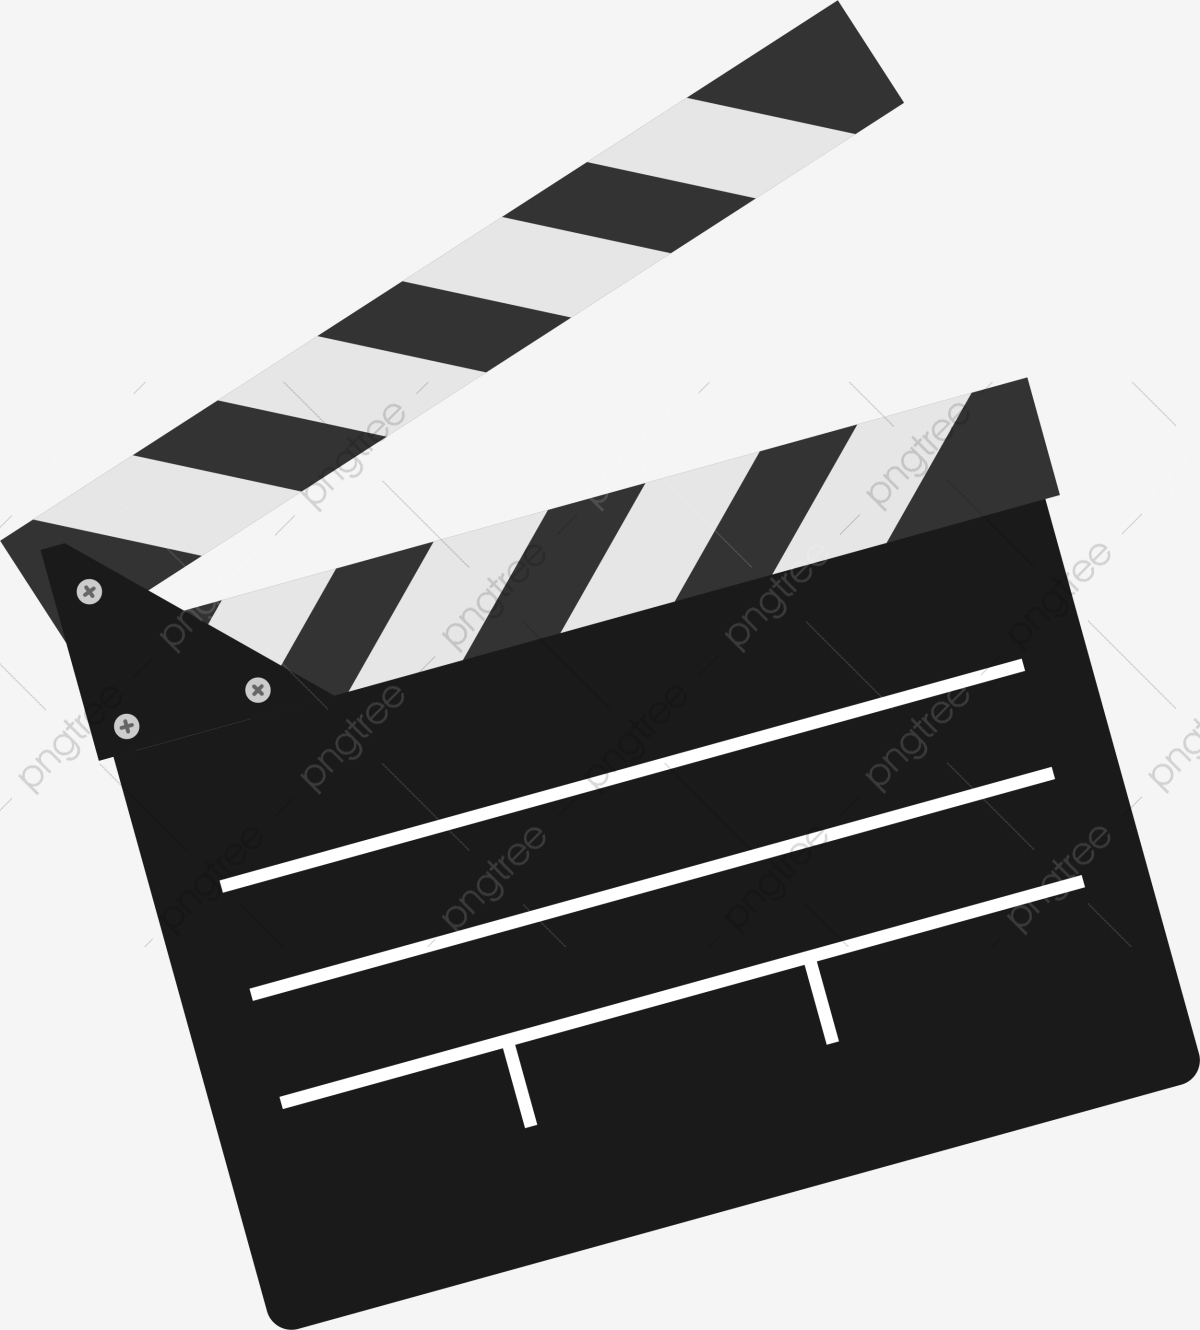 Filming Filming Film Festival Movie, Show, Play, Directors Board PNG  Transparent Image and Clipart for Free Download